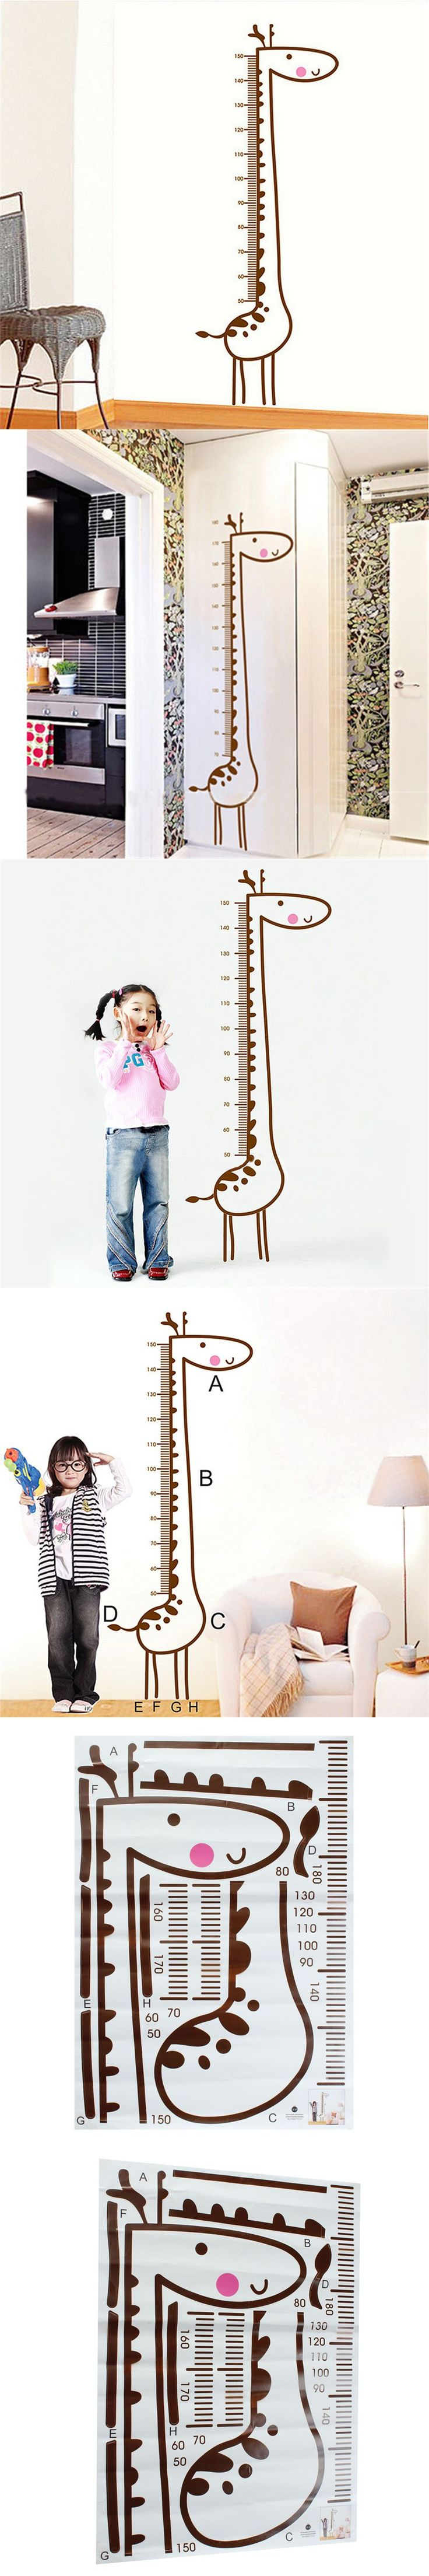 DIY Removable Giraffe Wall Sticker Kids Child Growth Chart Height Measure Home Kids Bedroom Decor Best Gift Free Shipping